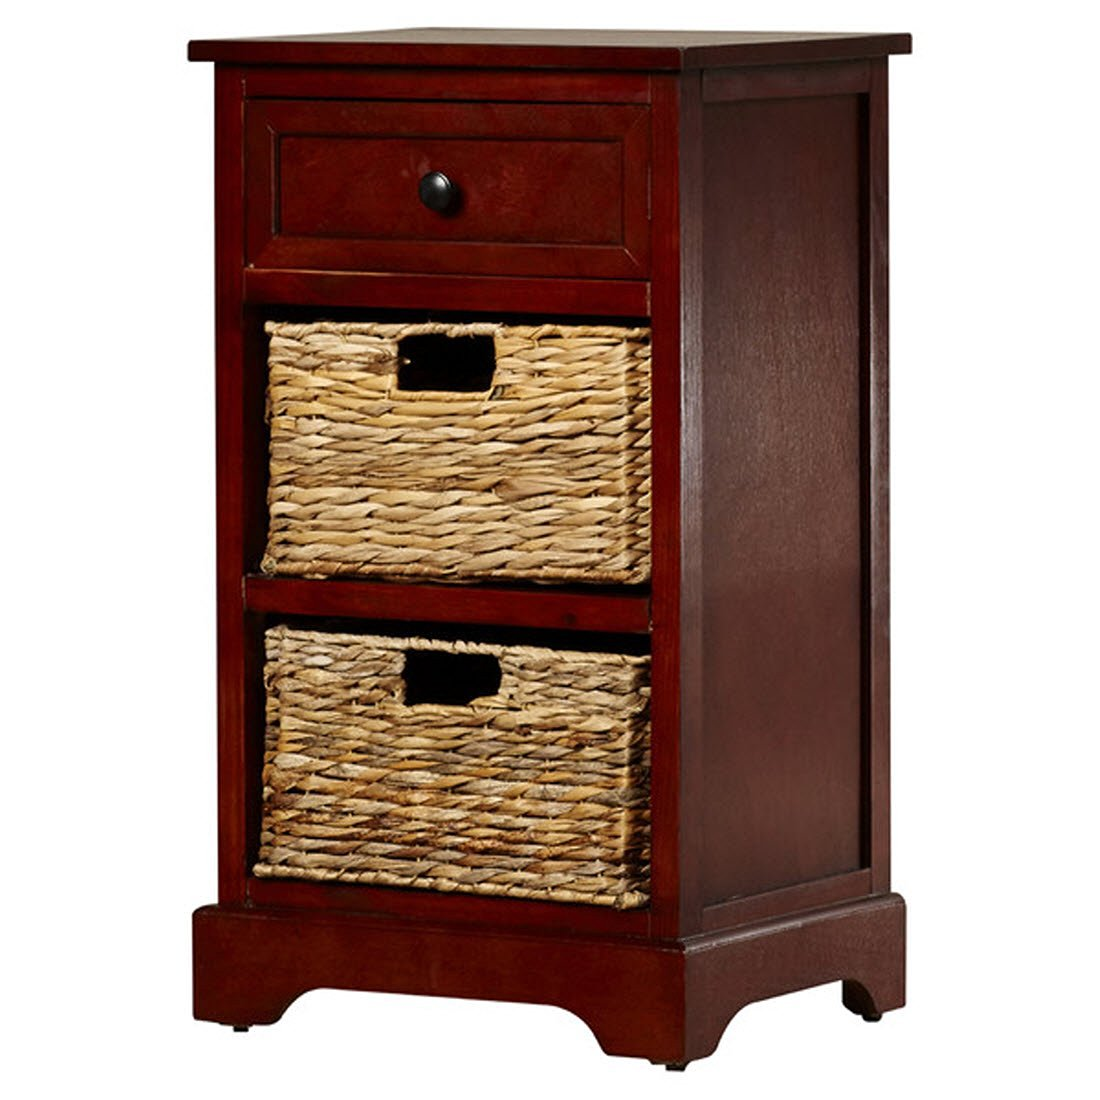 Nonatum Storage End Table- It Has 3 Drawers - Comes with Rattan Wicker Baskets - Rectangular Shape (Dark Cherry)